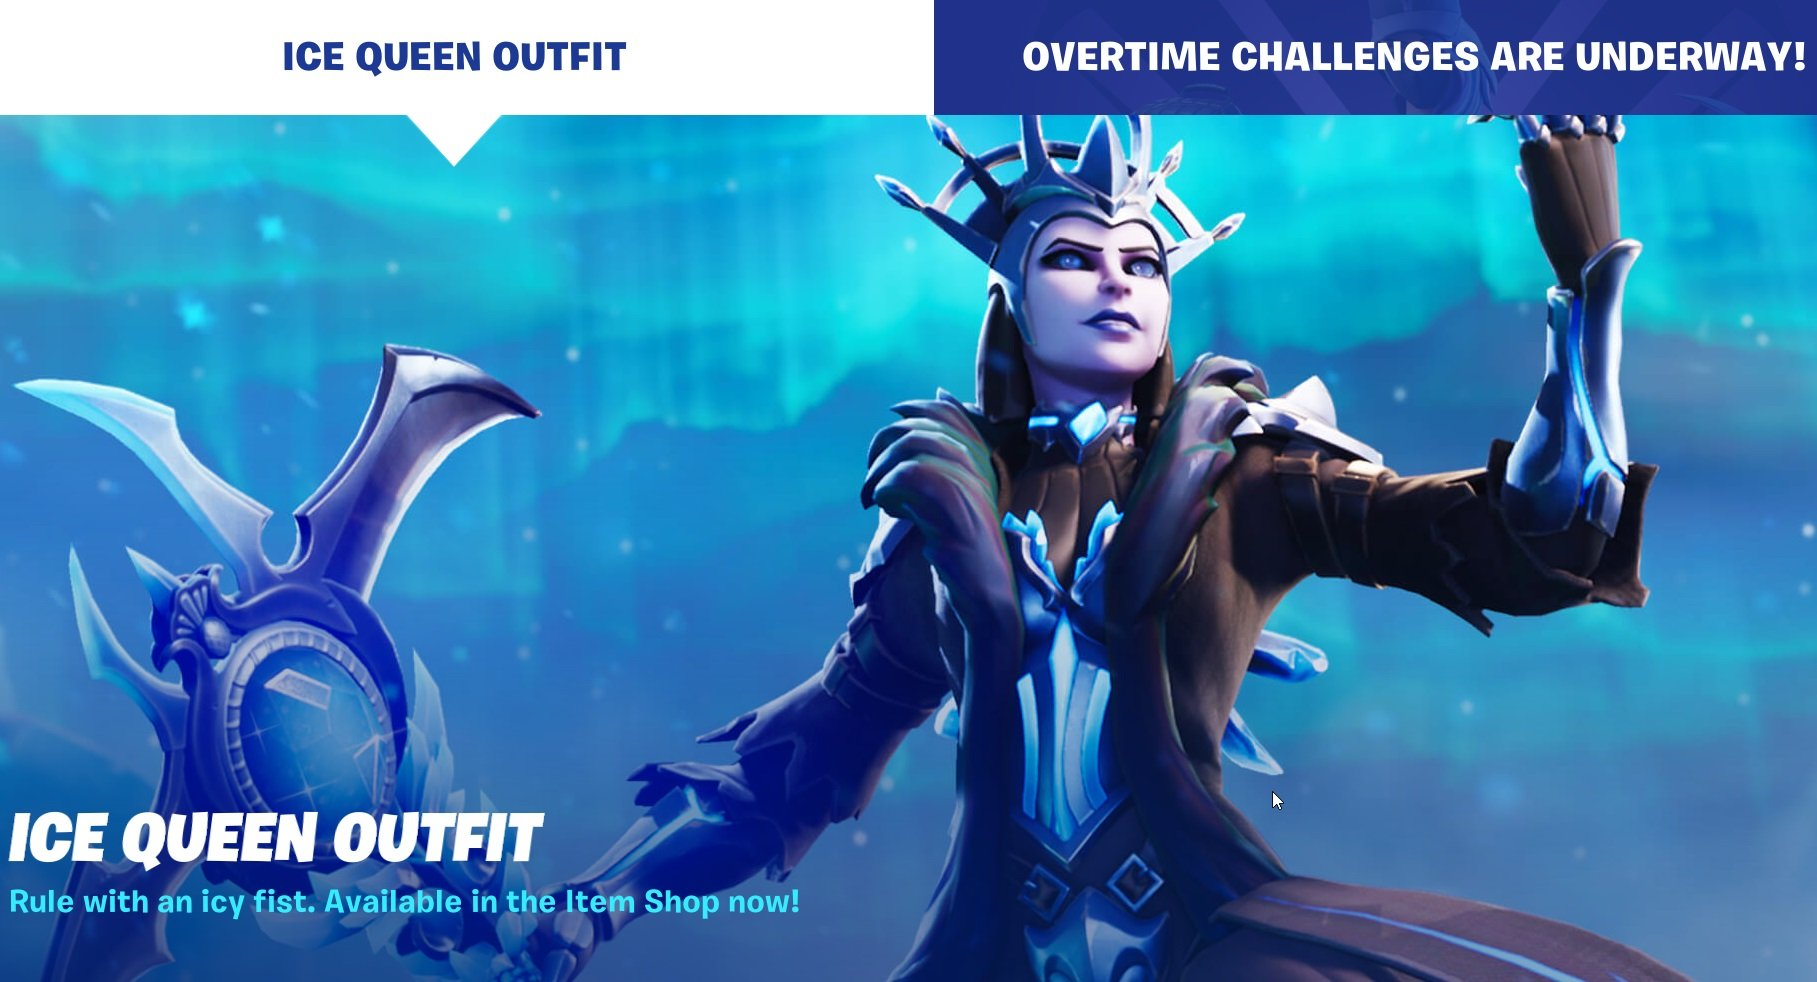 Ice Queen Outfit available in Fortnite